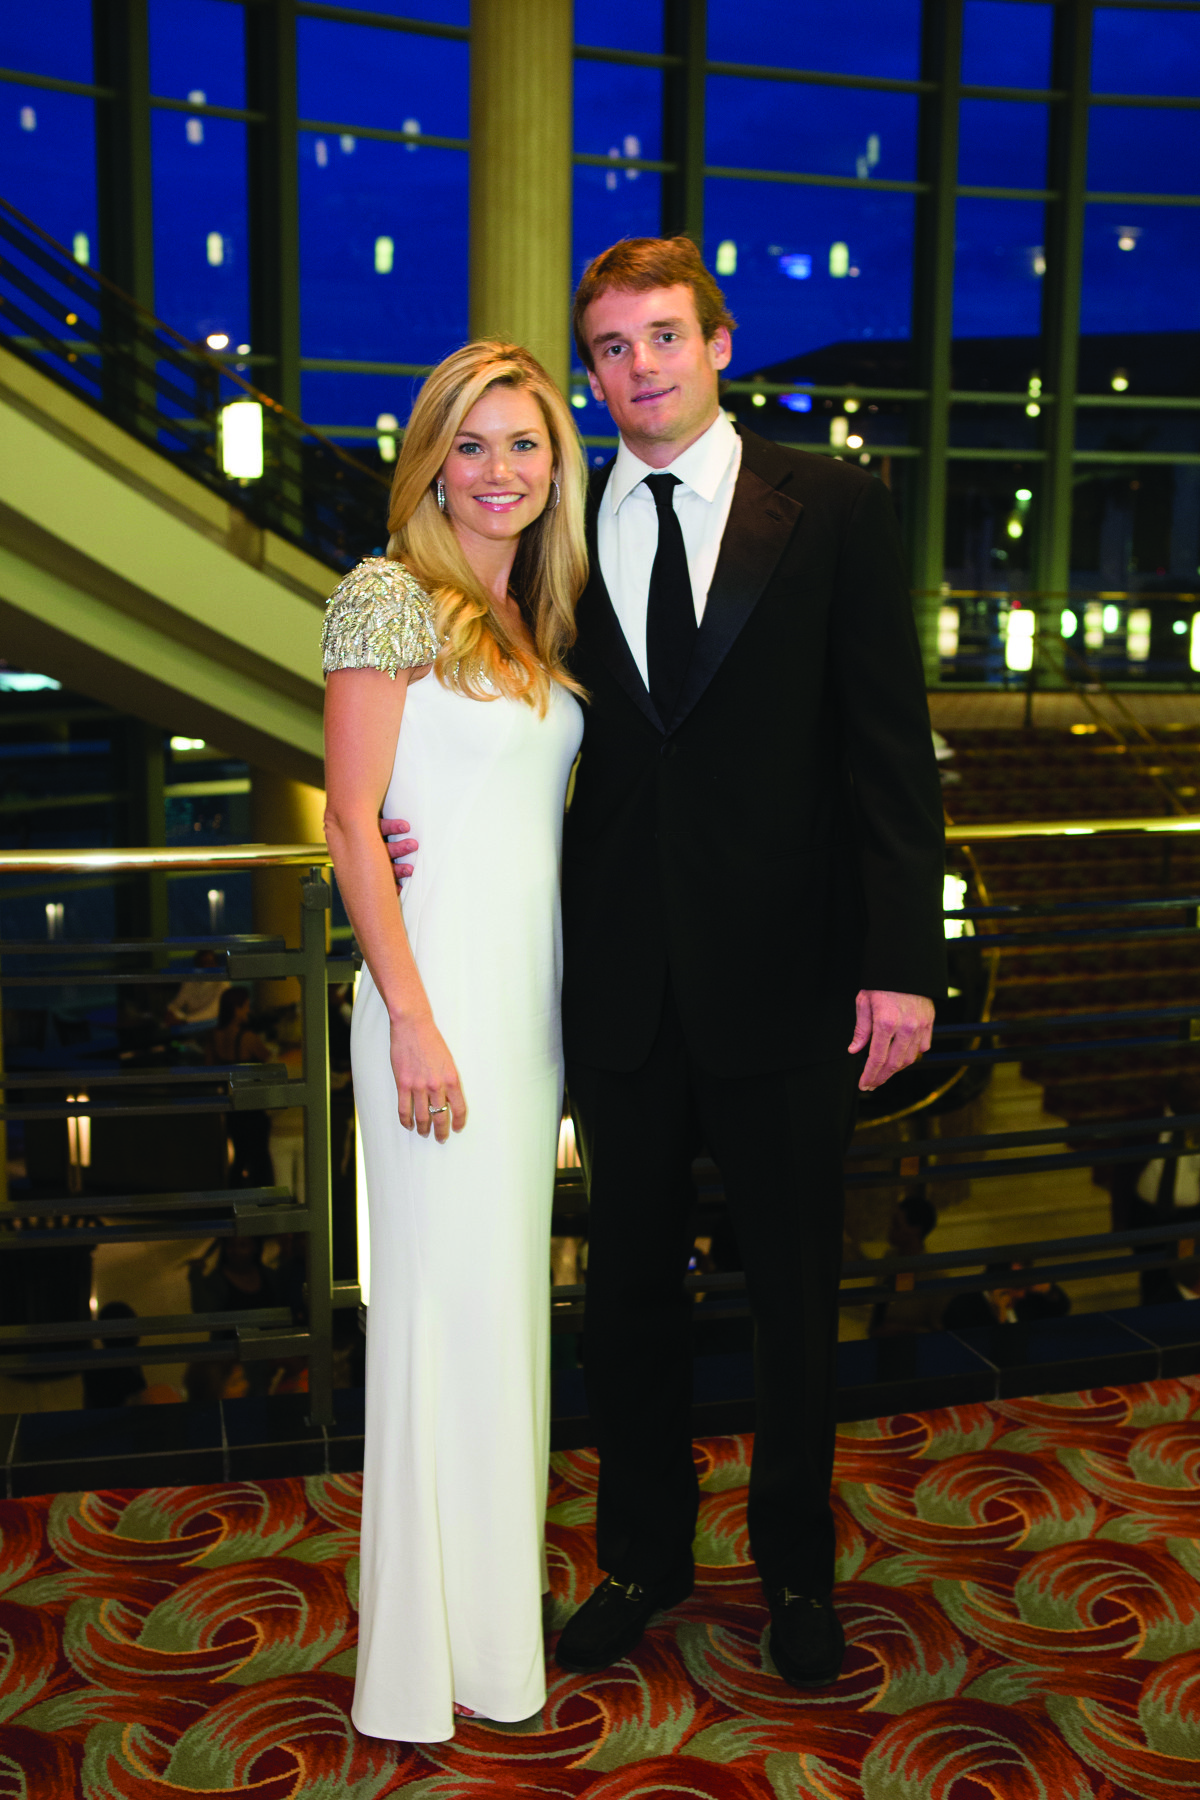 Society Scene photos - Cameron Preston, left, and Jeffery Preston enjoyed a red carpet runway in the lobby and cocktail reception at the Raymond F. Kravis Center for the Performing Arts